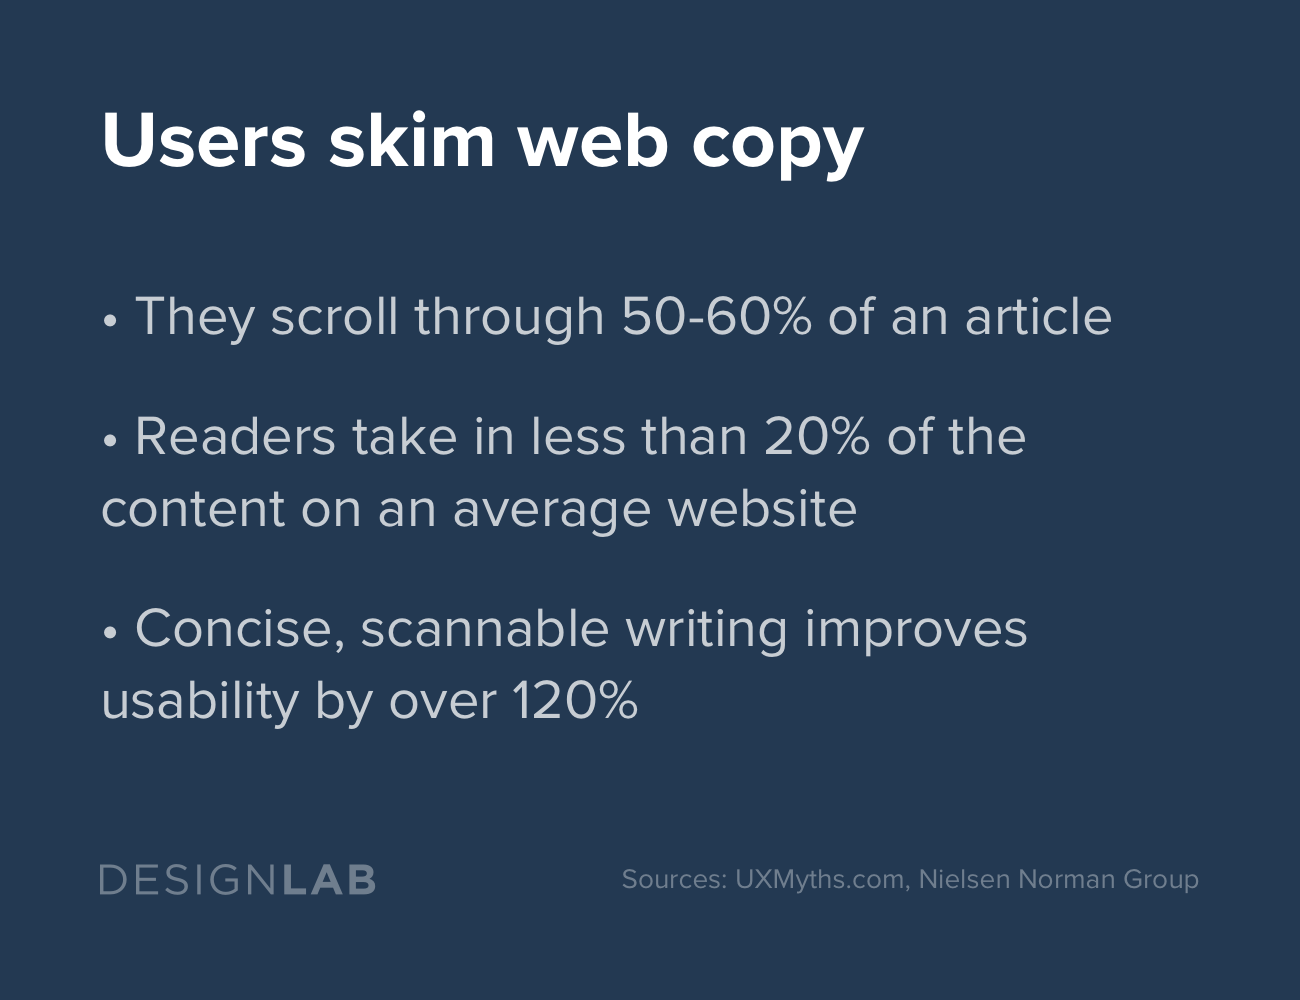 Users skim web copy